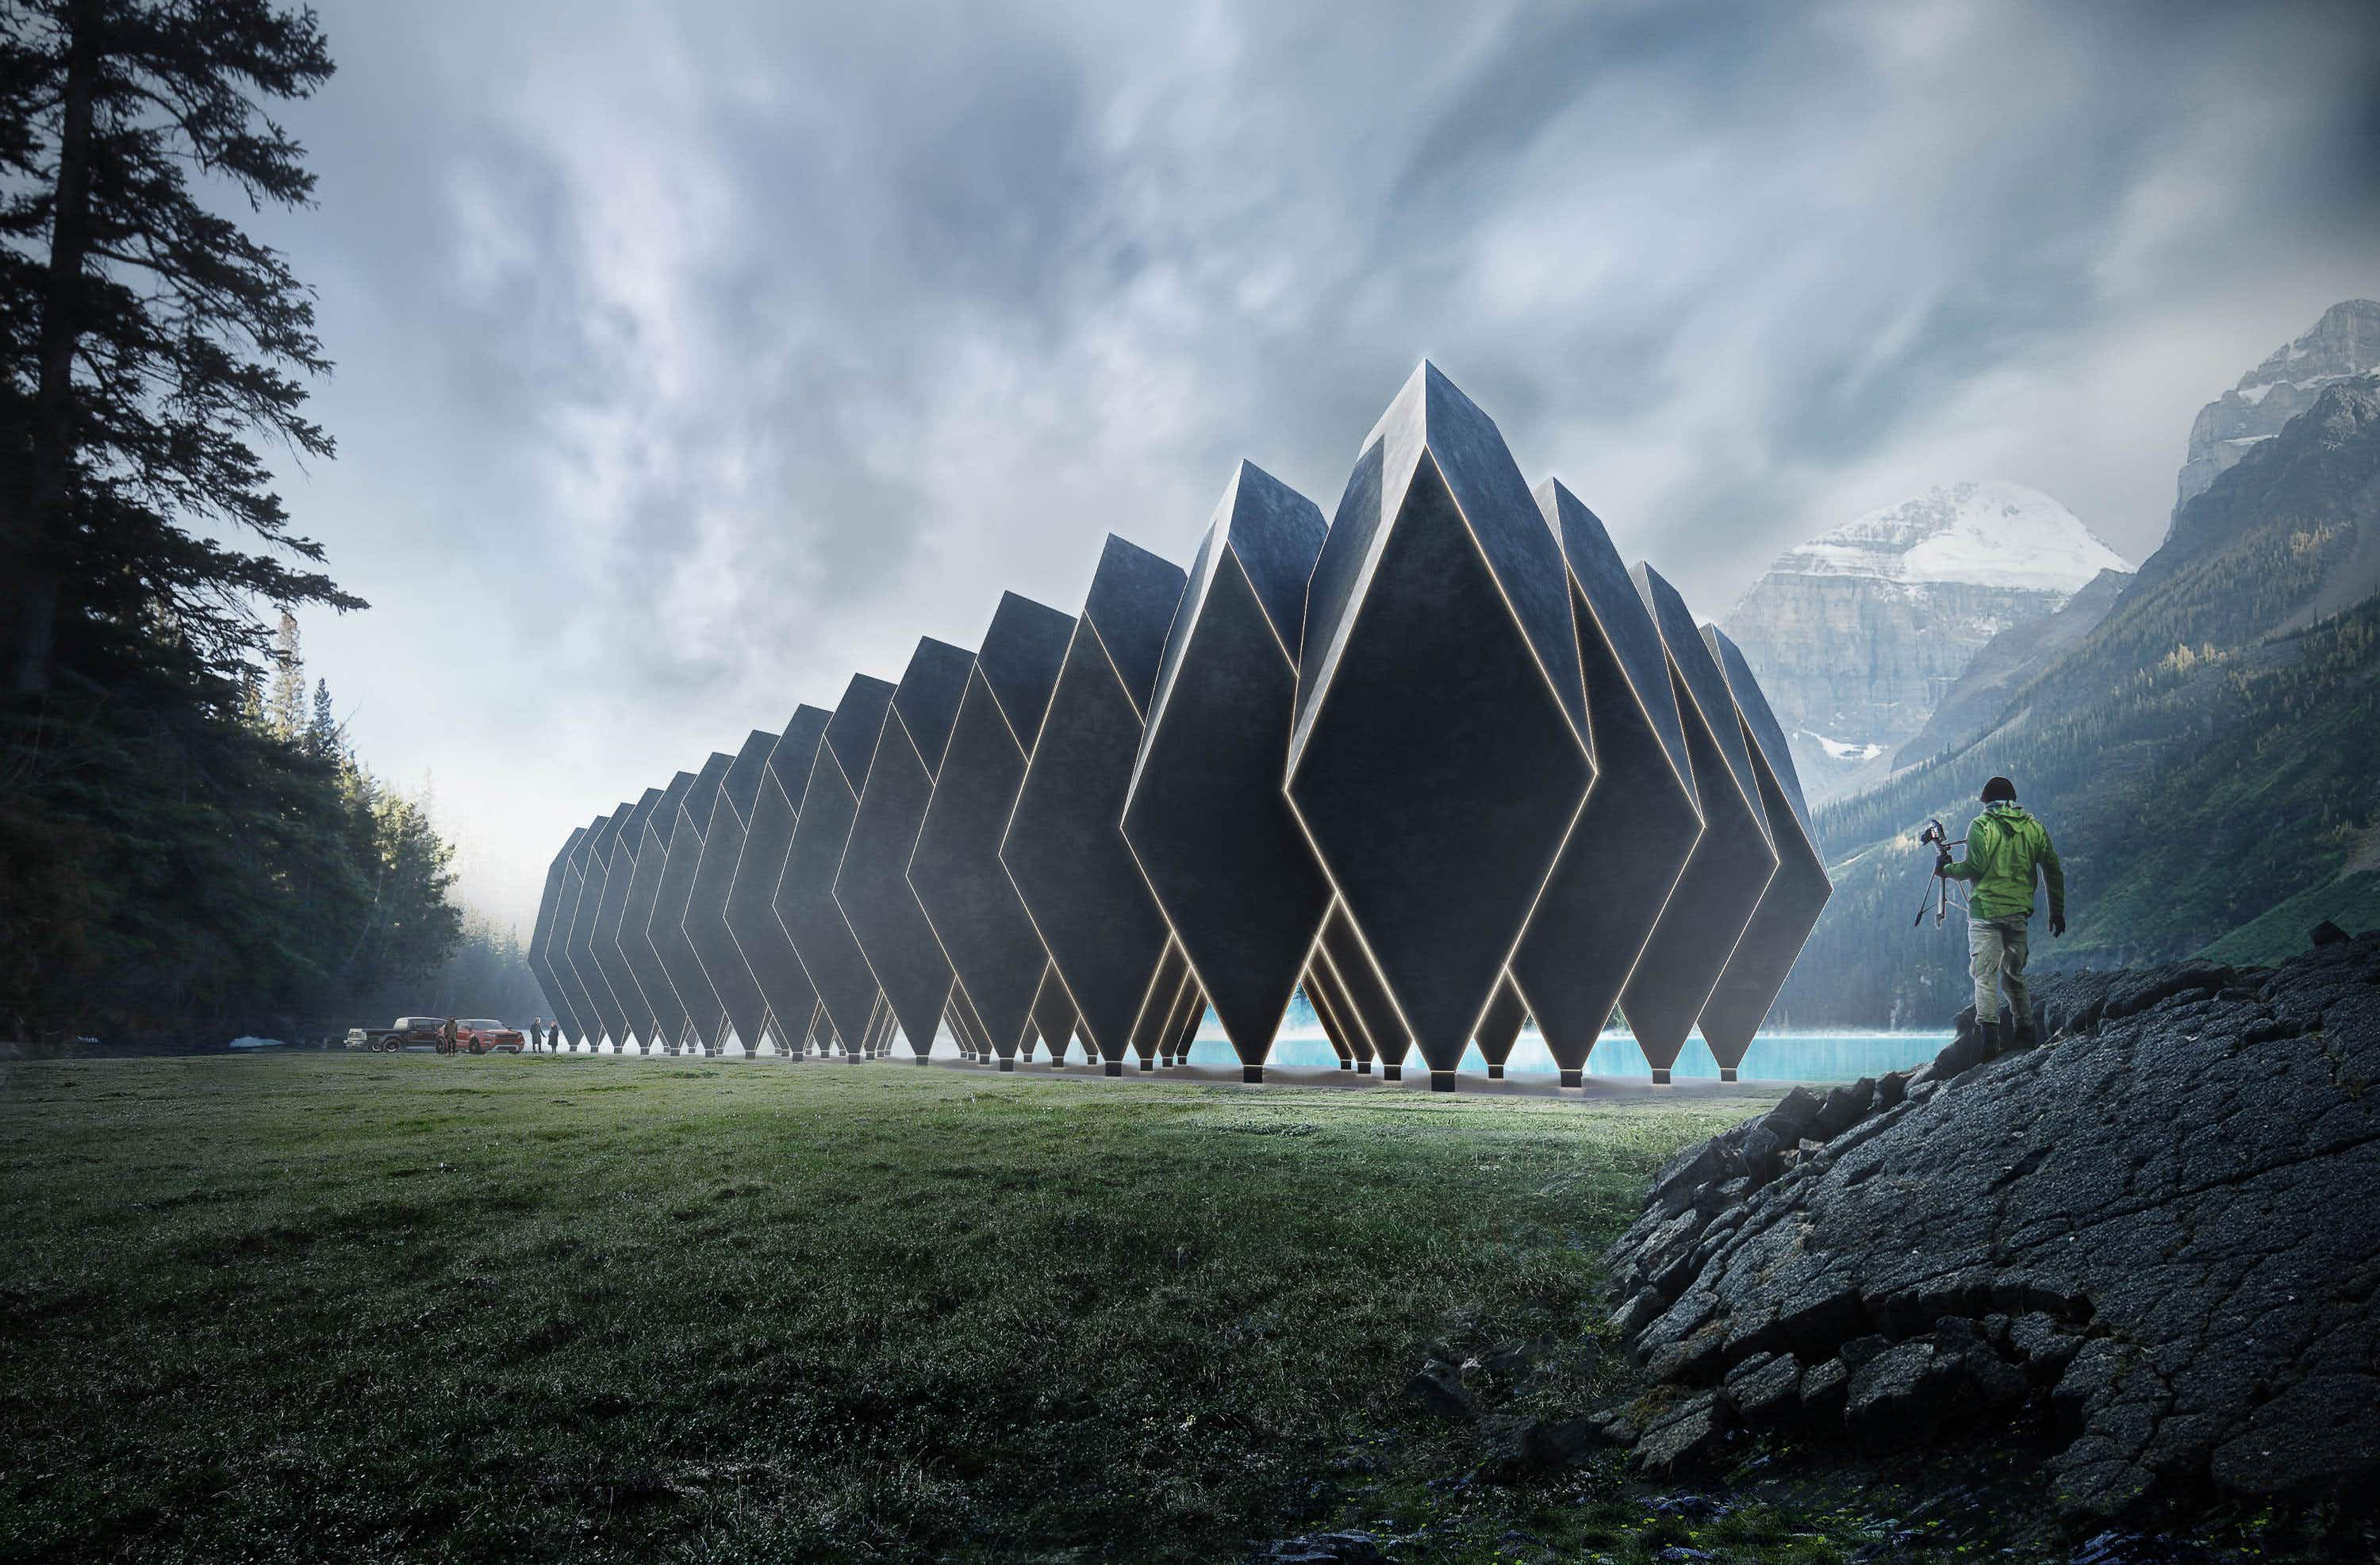 Where in the world could this futuristic hotel be located?